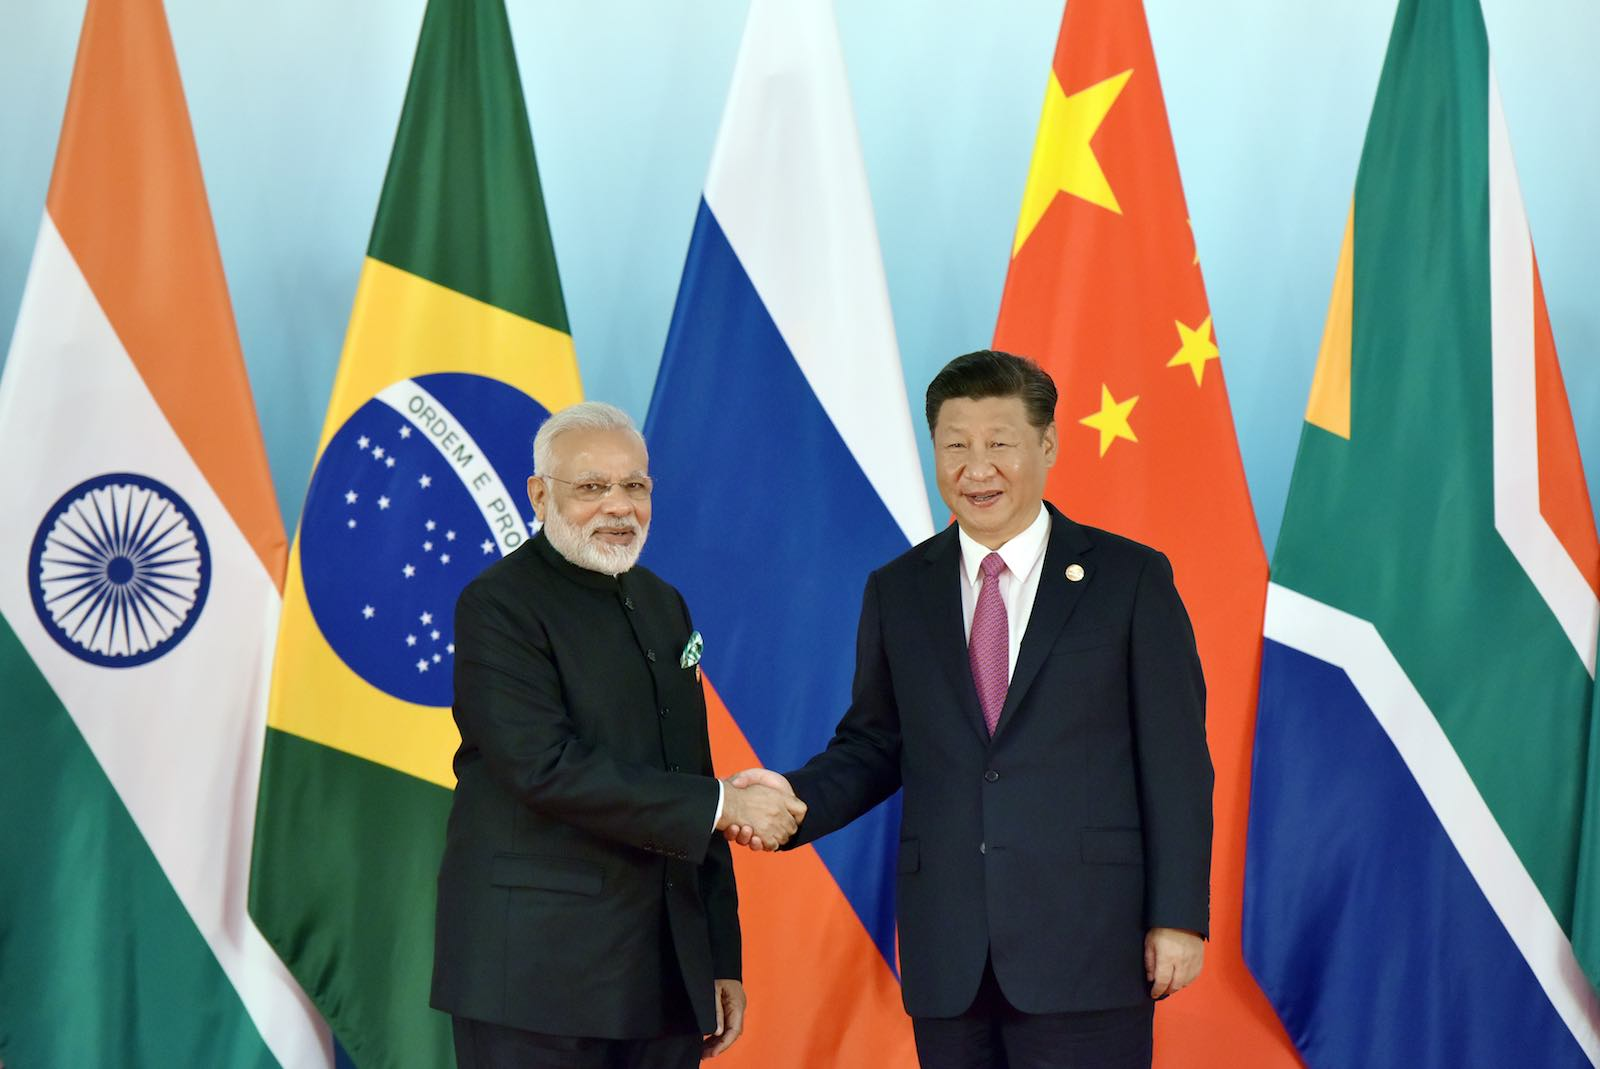 Brighter days: Narendra Modi and Xi Jinping at the 2017 BRICS summit in Xiamen, China (TPG/Getty Images)